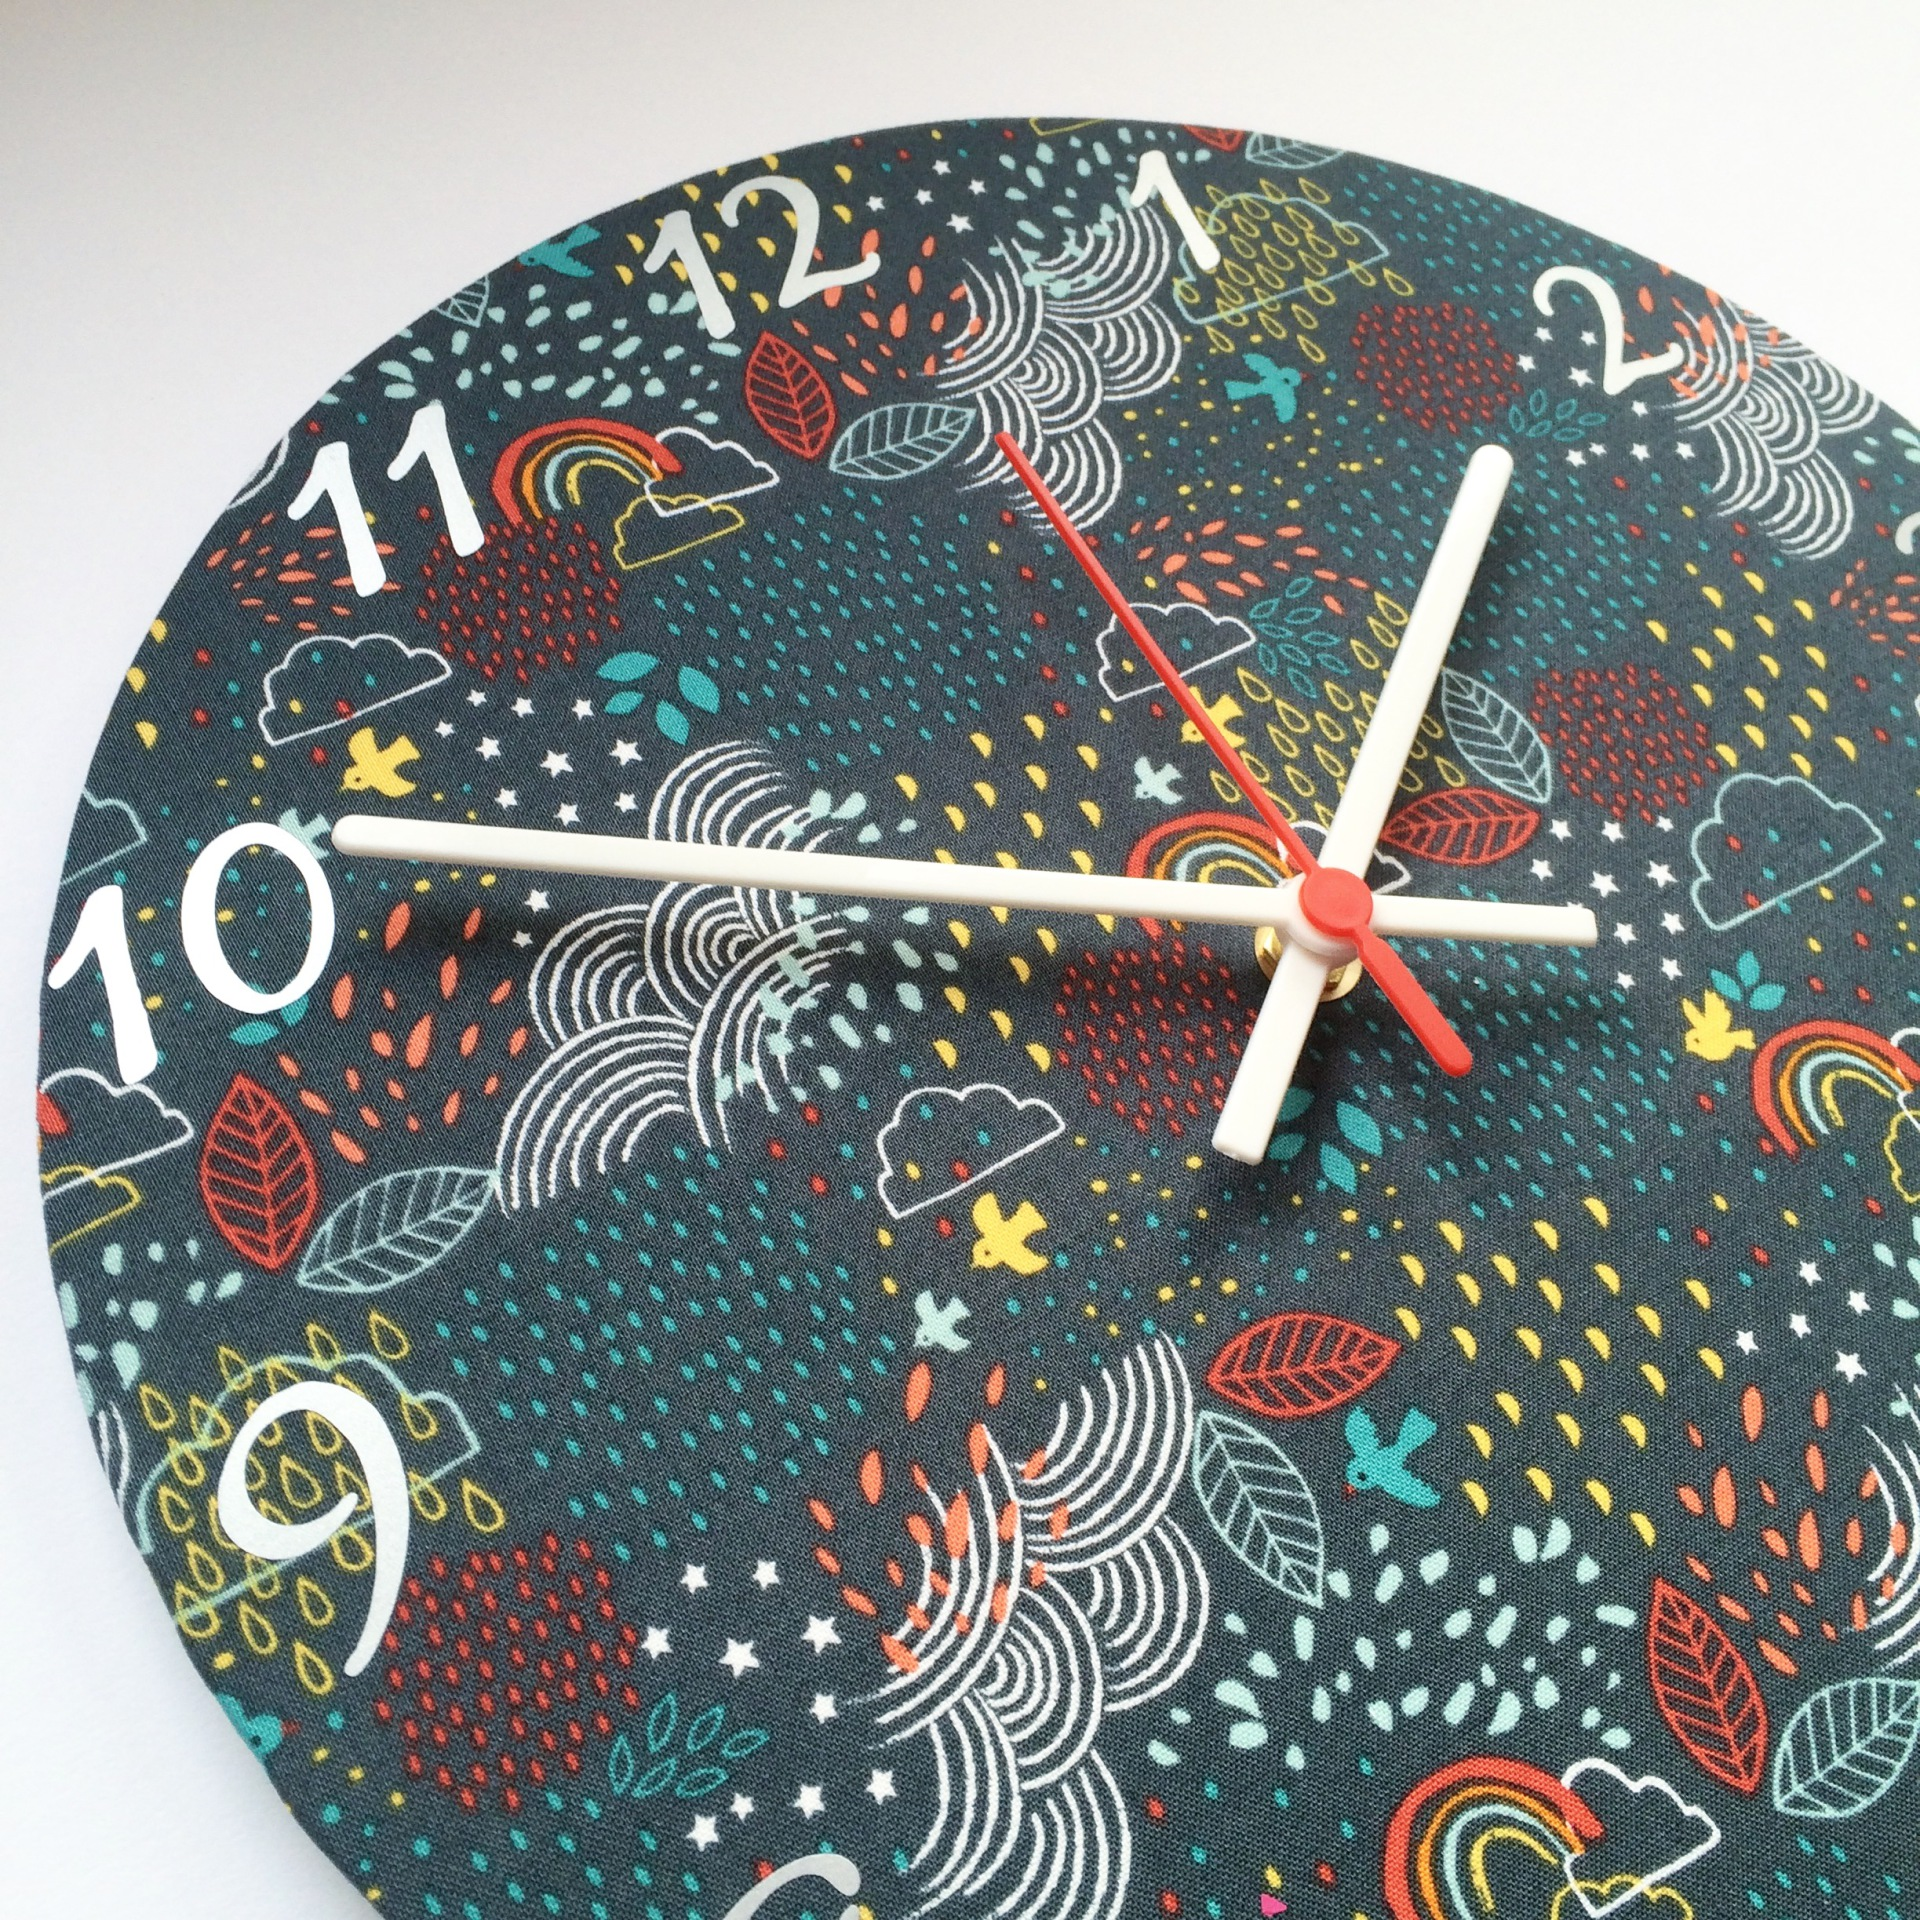 Raindrop and Cloud Clock - £20